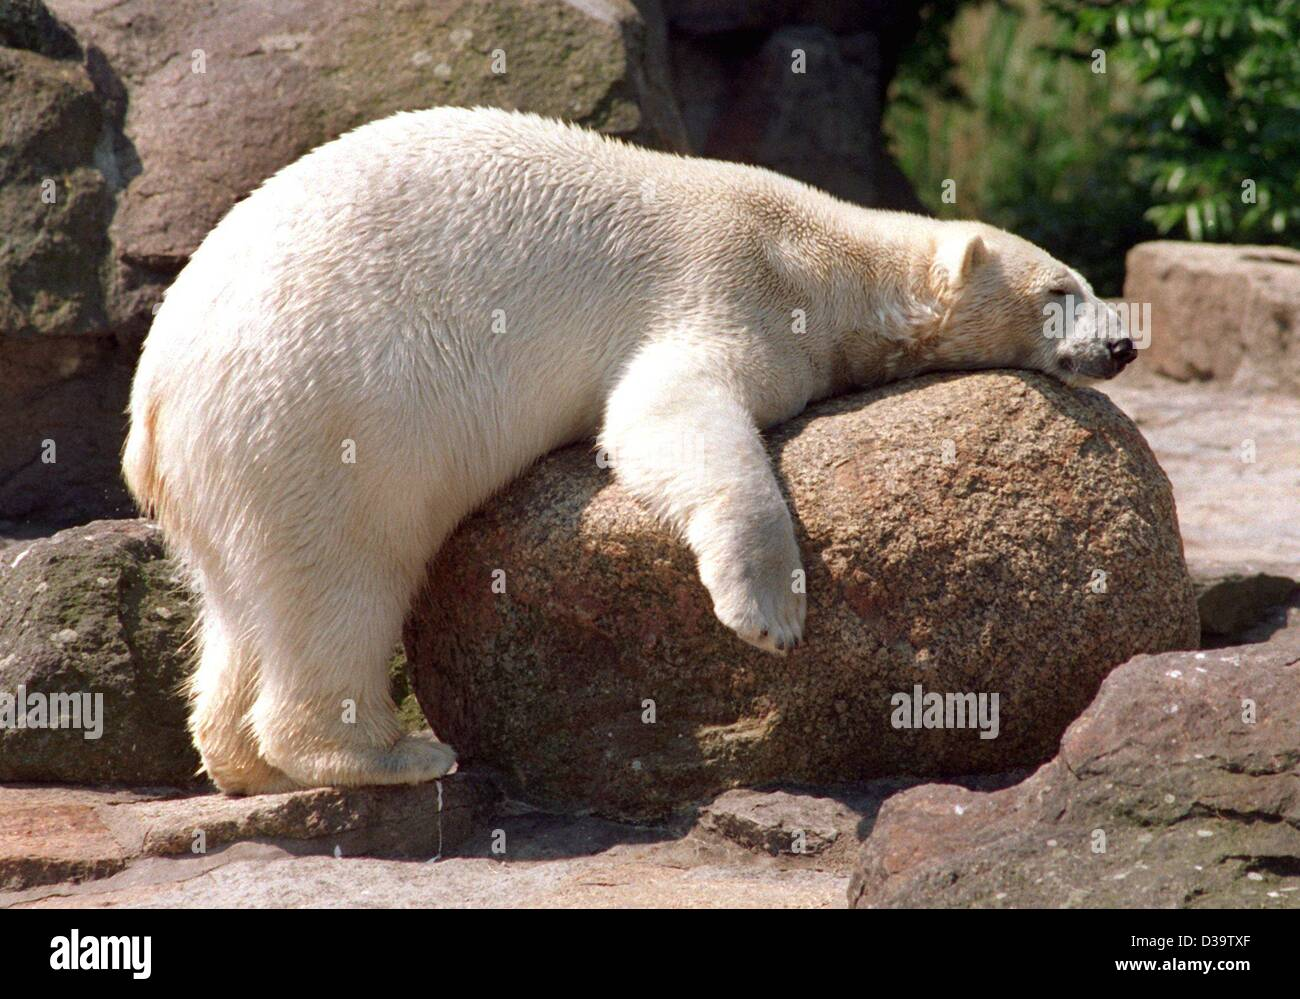 (dpa) - A polar bear is overcome by sleepiness and rests on a rock in its compound at the Berlin Zoo (filer of 2000). - Stock Image